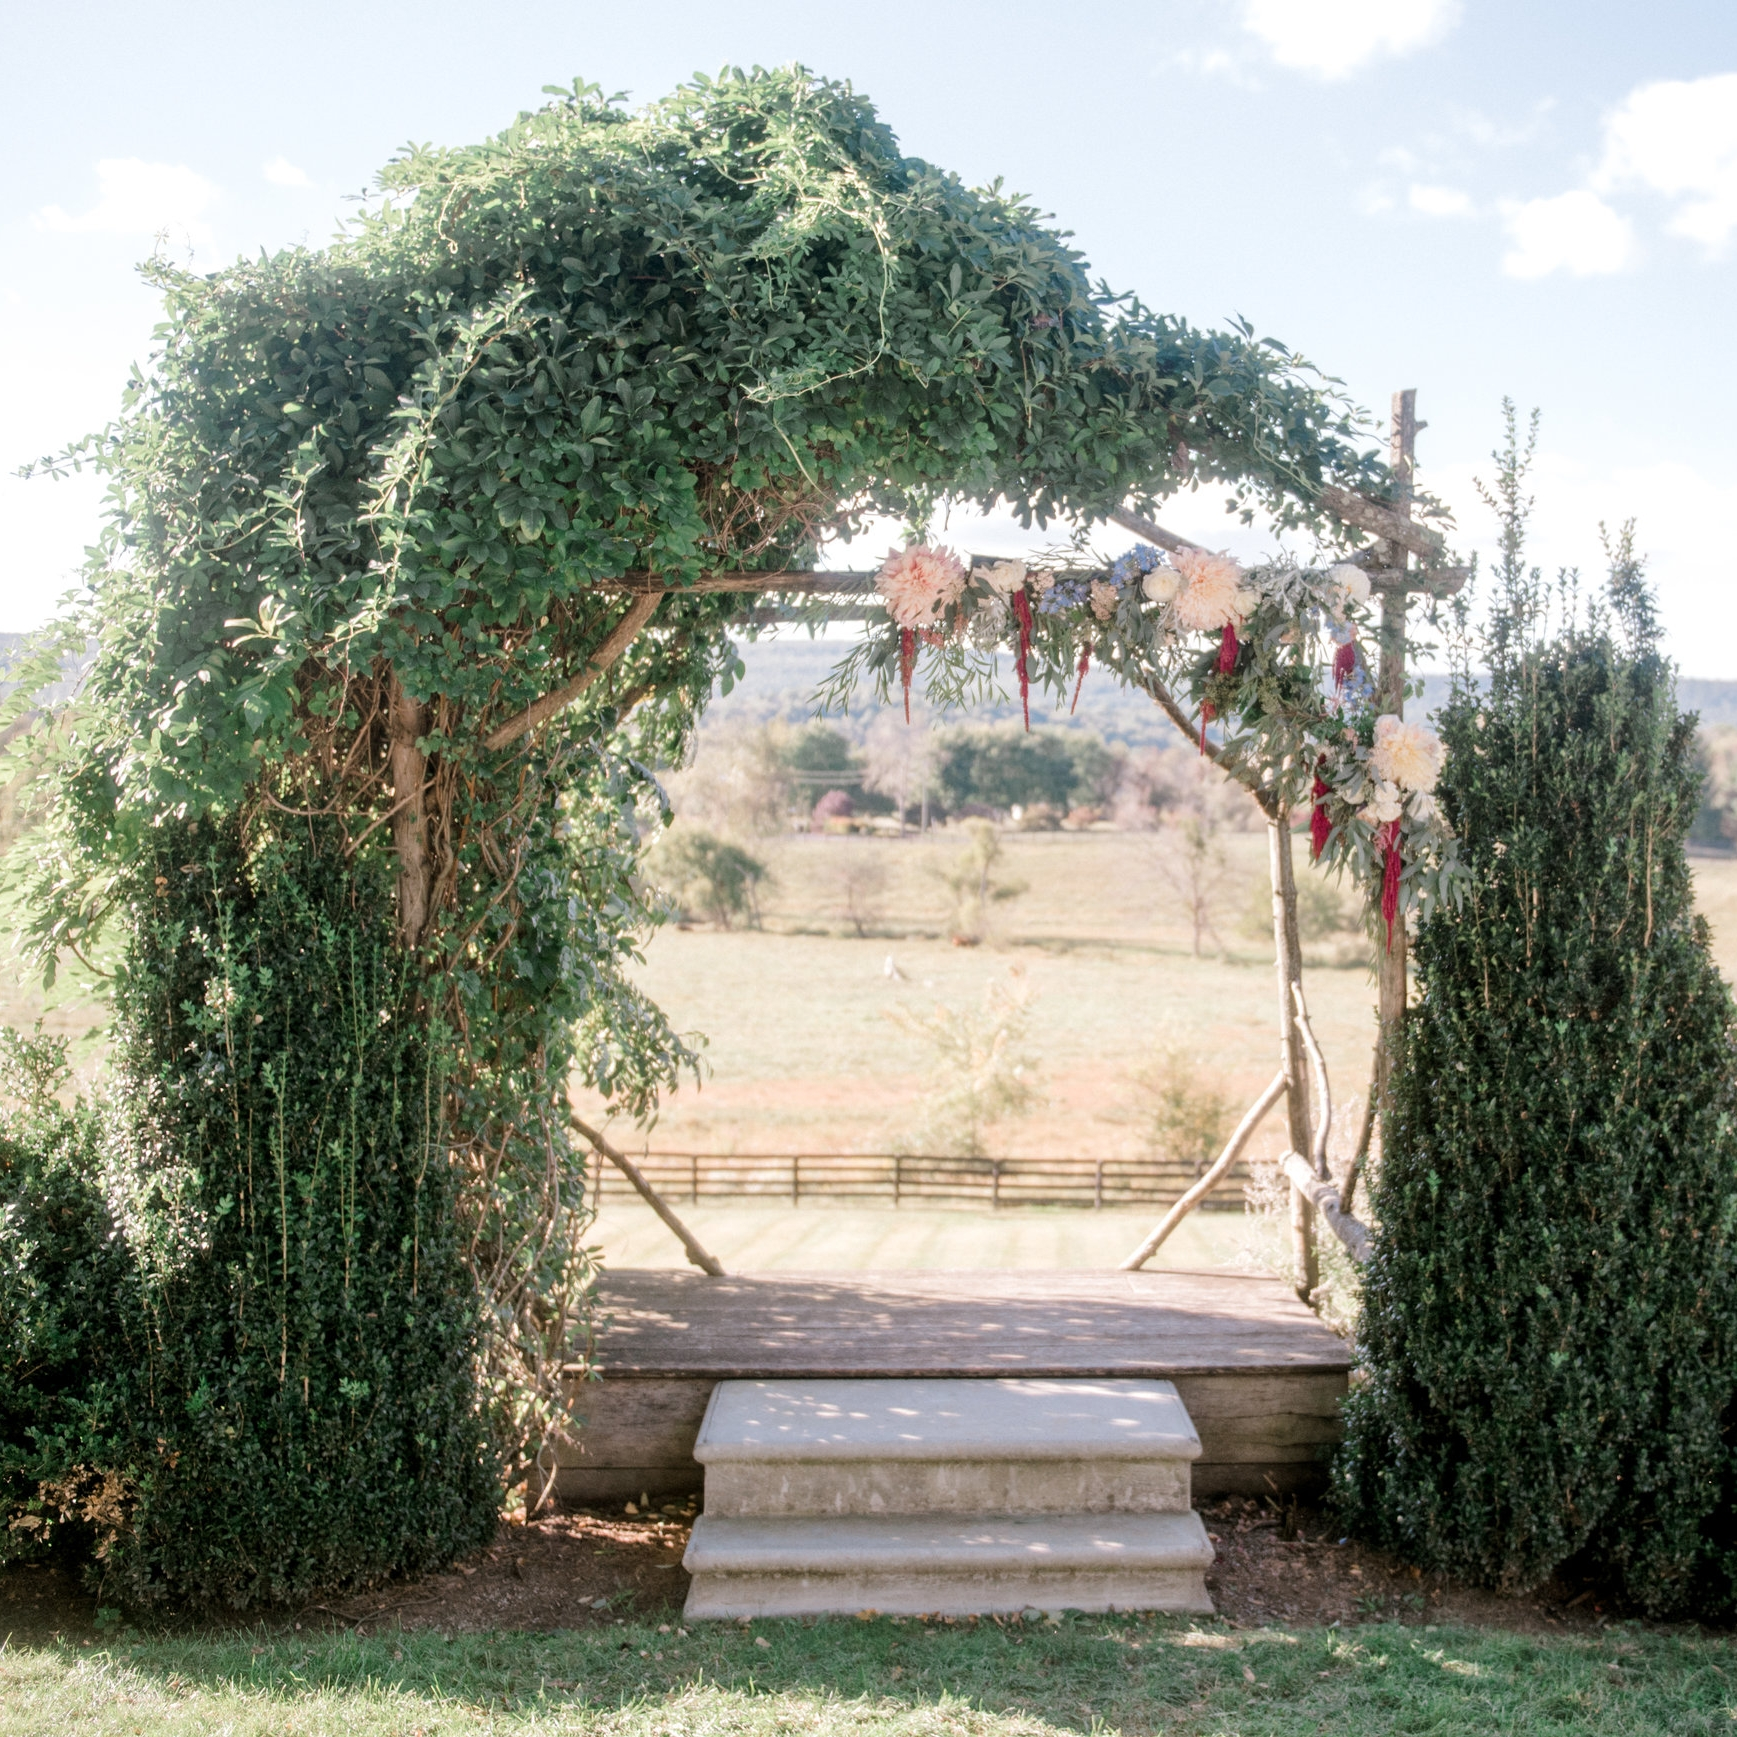 The Arbor - The most popular location to exchange vows at Silverbrook is at the arbor in the garden. Views of the farmland below and the Blue Ridge Mountains in the distance create a calming and peaceful setting. The arch is naturally decorated with vines, but couples can add their own florals and decor to make it their own. The raised platform under the arch provides the perfect view for your guests and they won't miss a thing as you say your